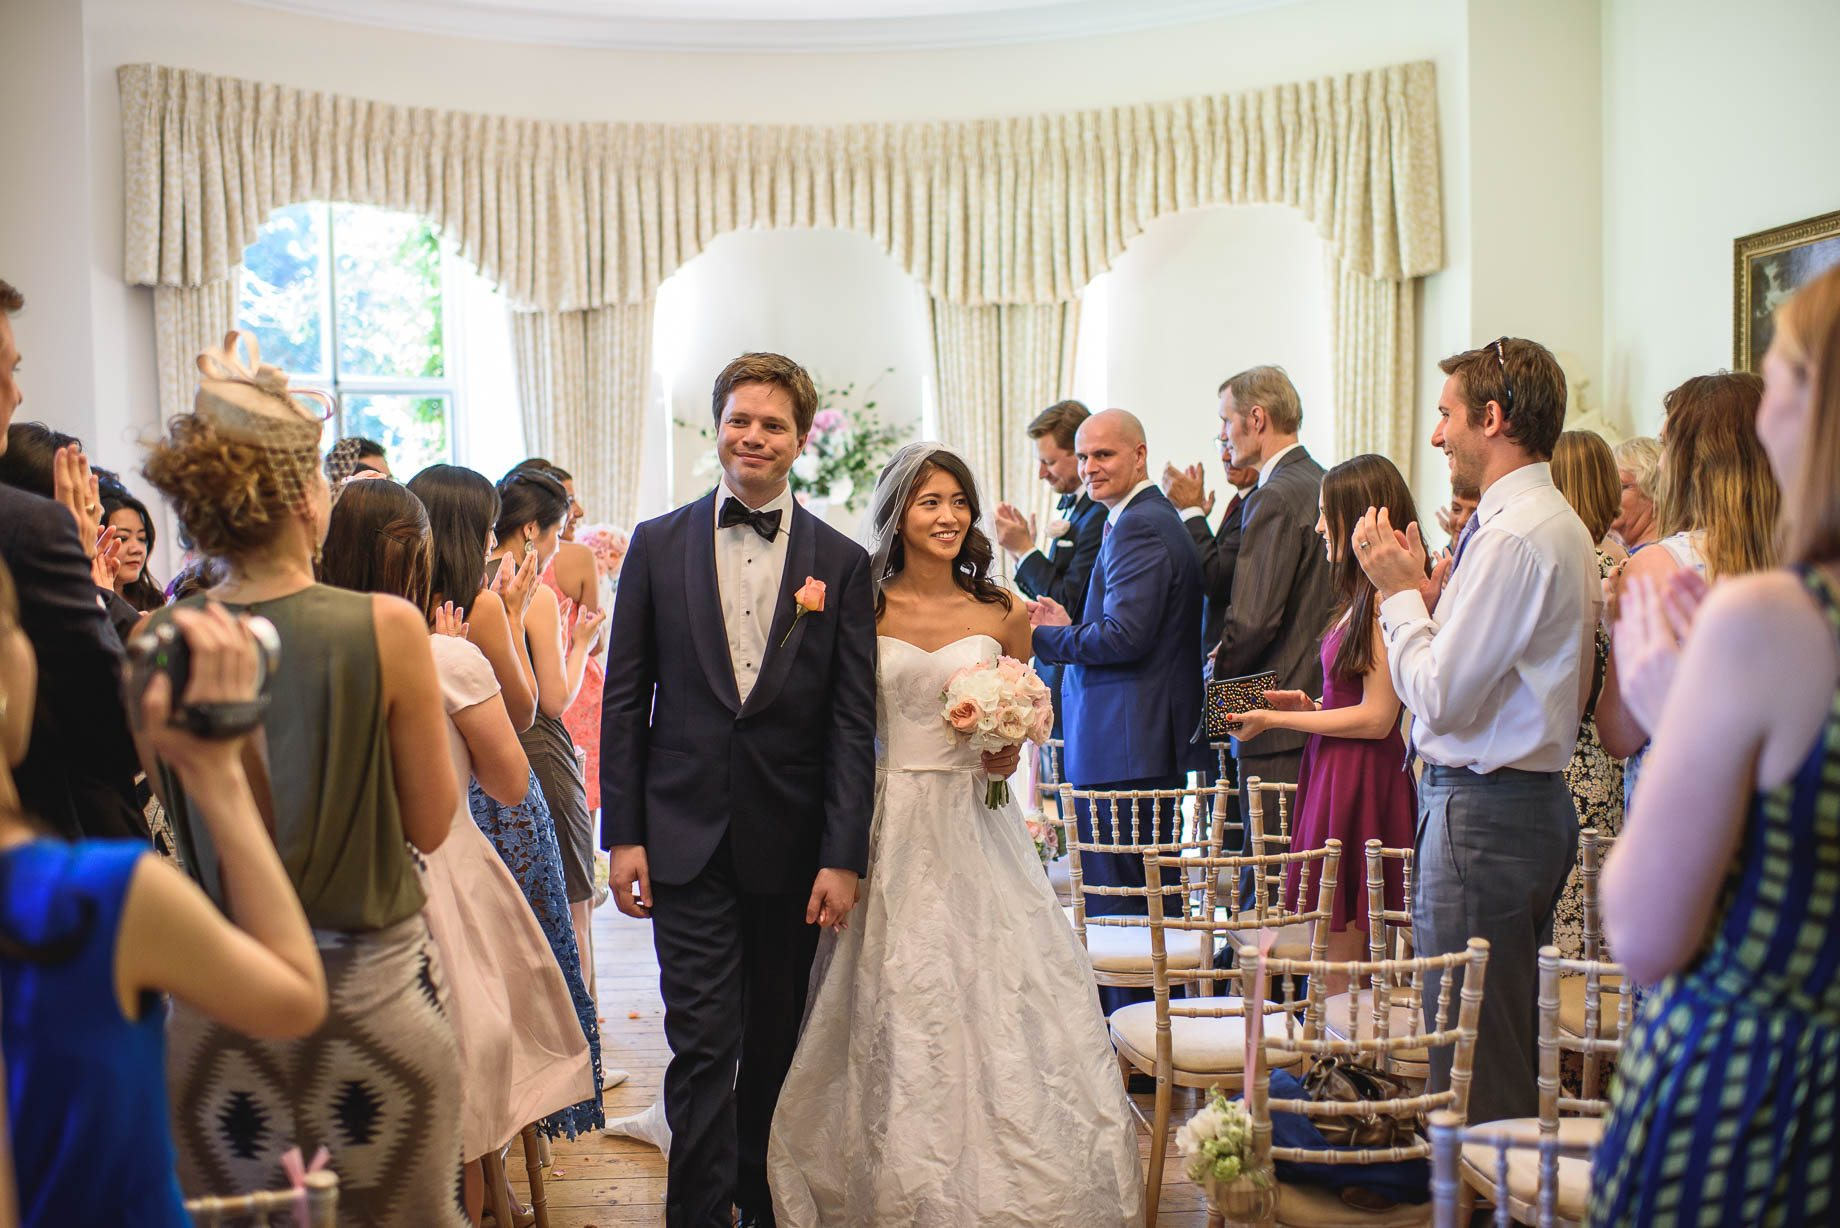 Kew Gardens wedding photography - Guy Collier Photography - Gloria and Frederik (52 of 173)